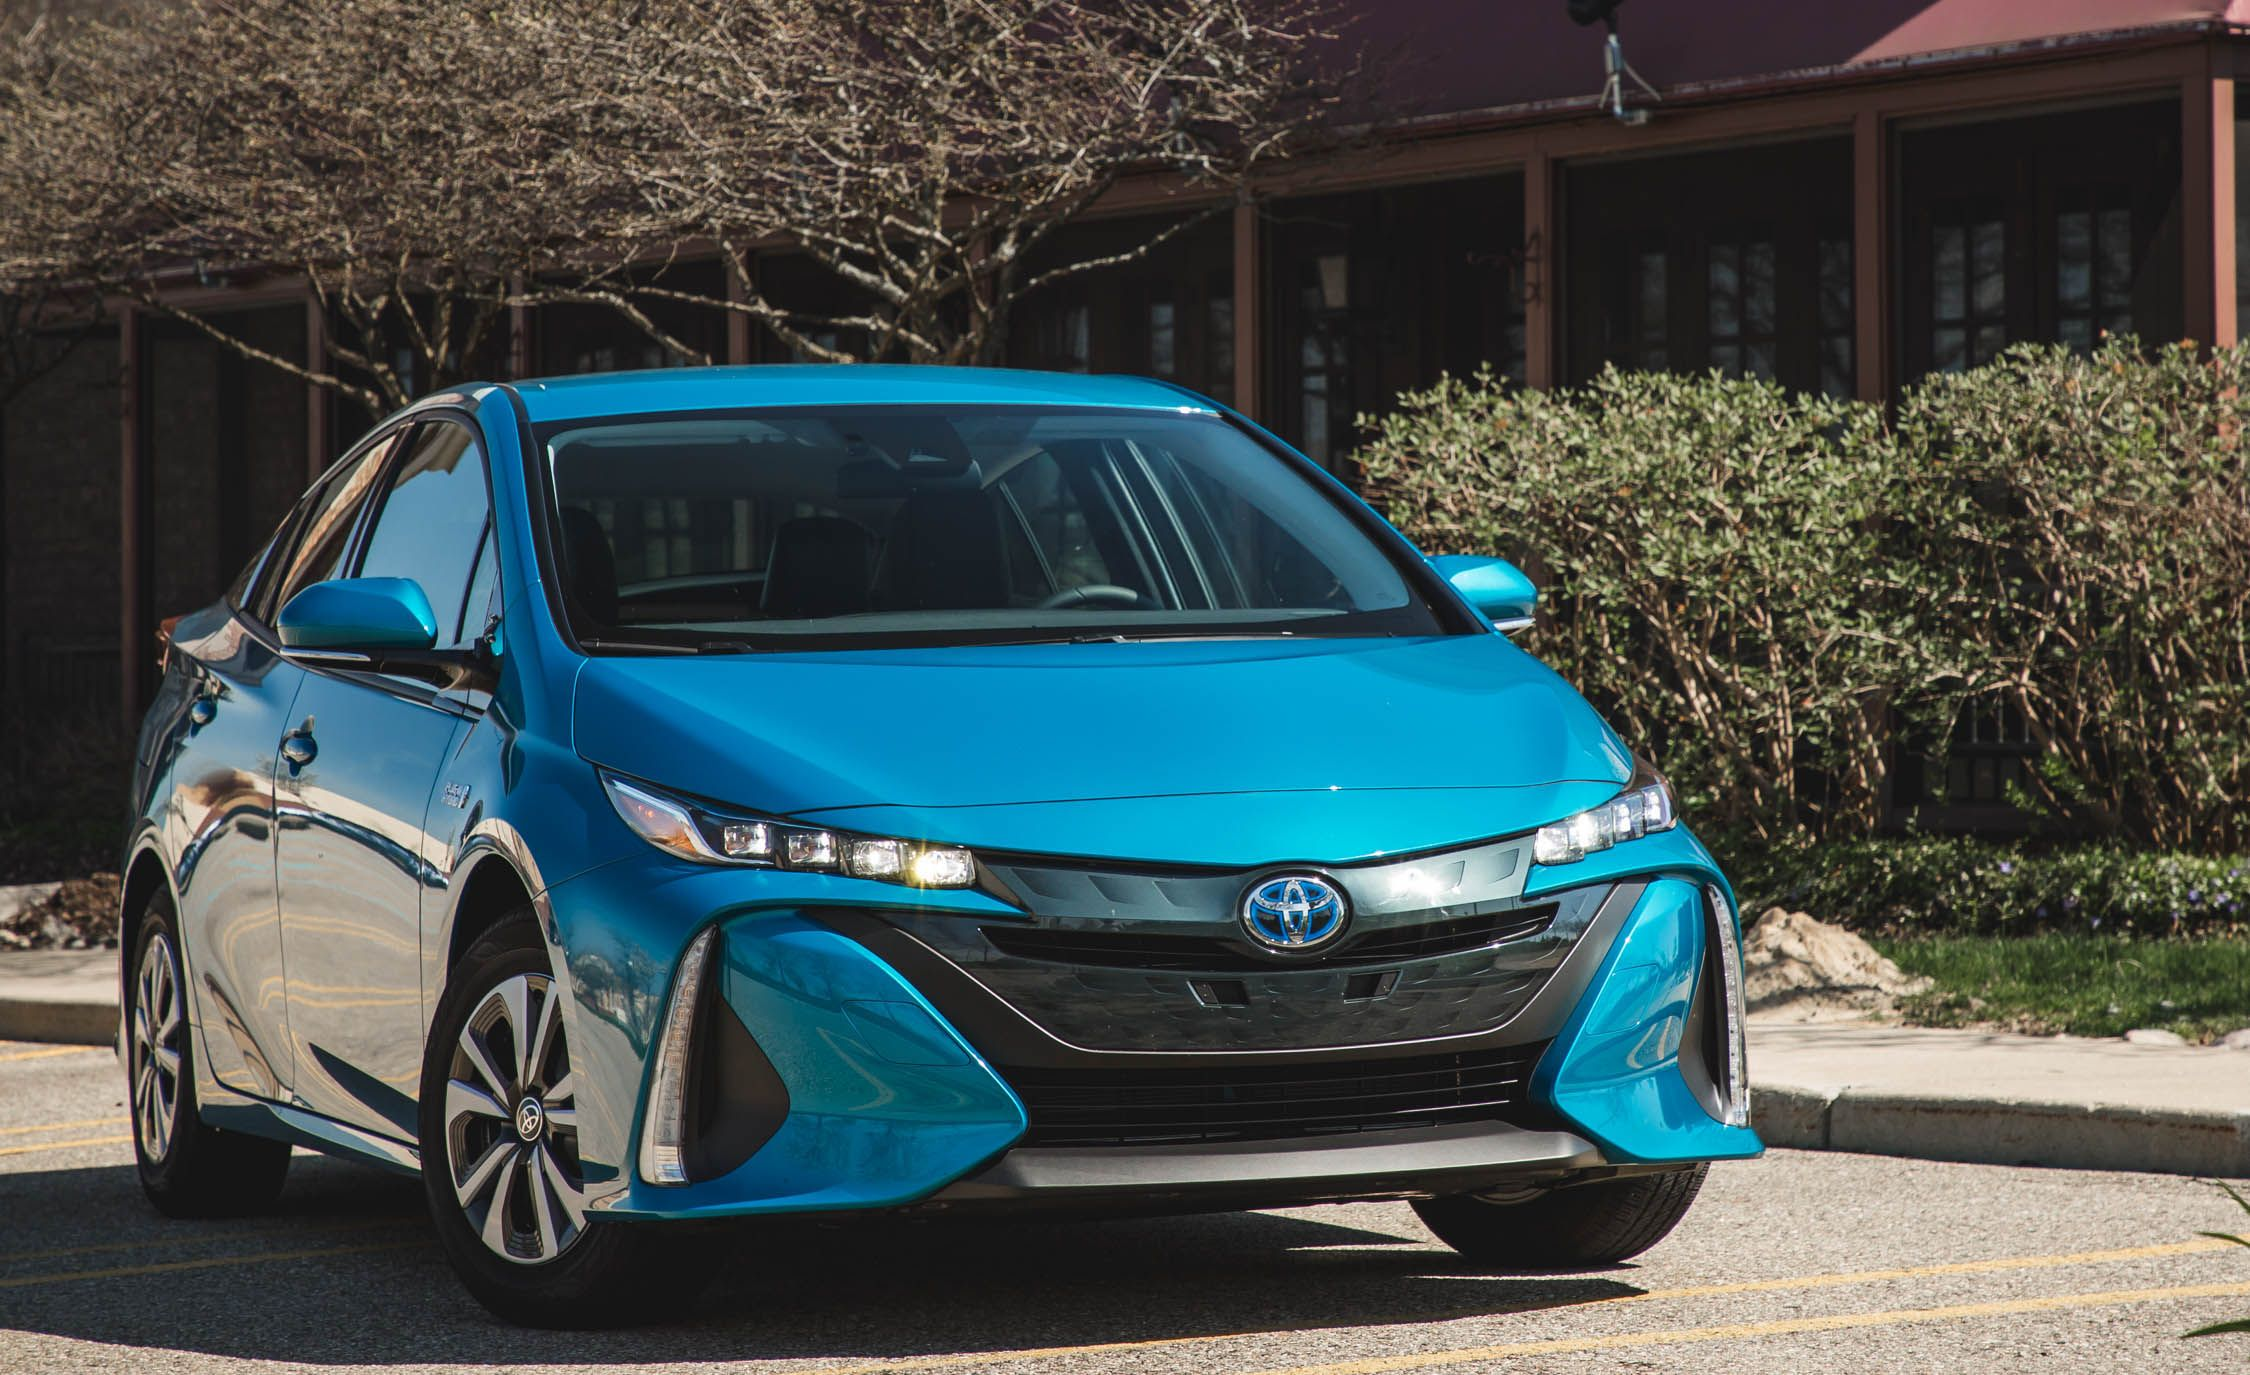 2018 toyota prius prime engine and transmission review car and driver. Black Bedroom Furniture Sets. Home Design Ideas